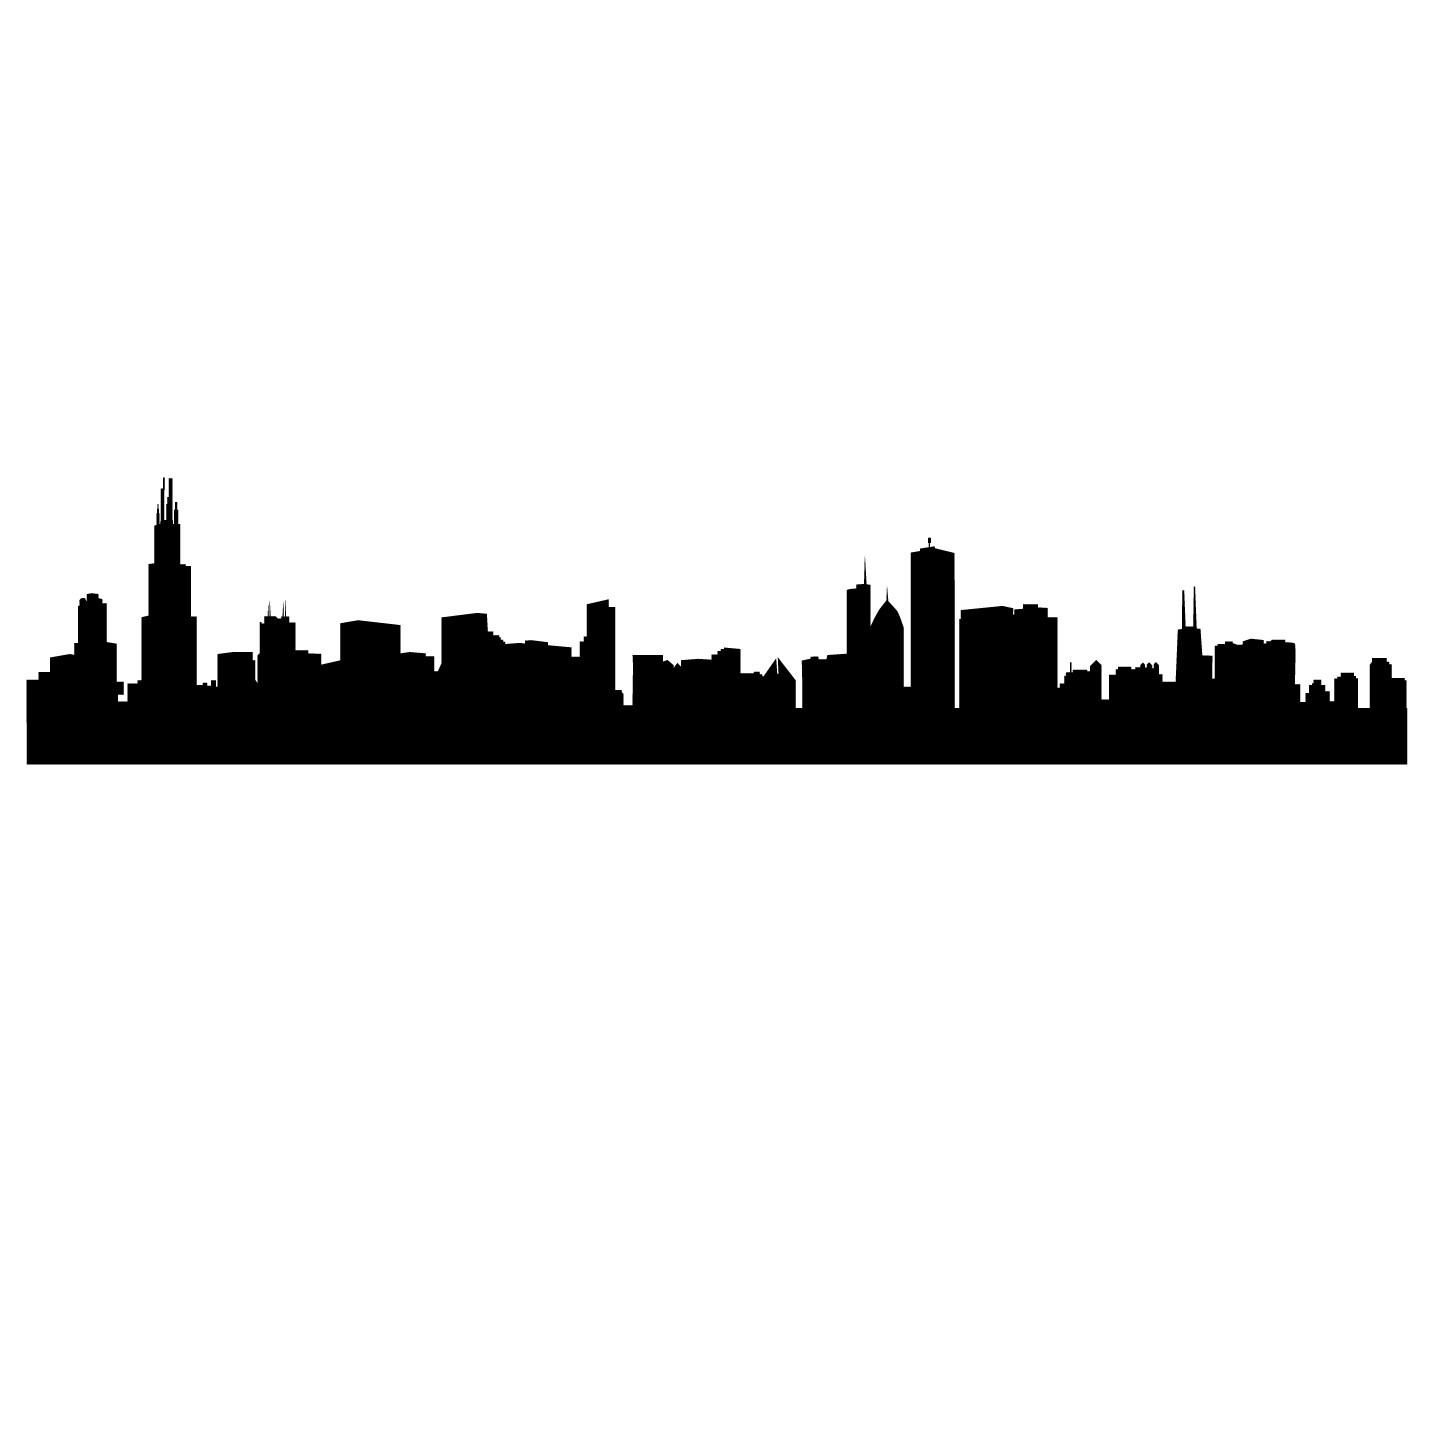 1440x1440 Jozi Skyline Silhouette Images Fresh Nyc Skyline Outline Cliparts